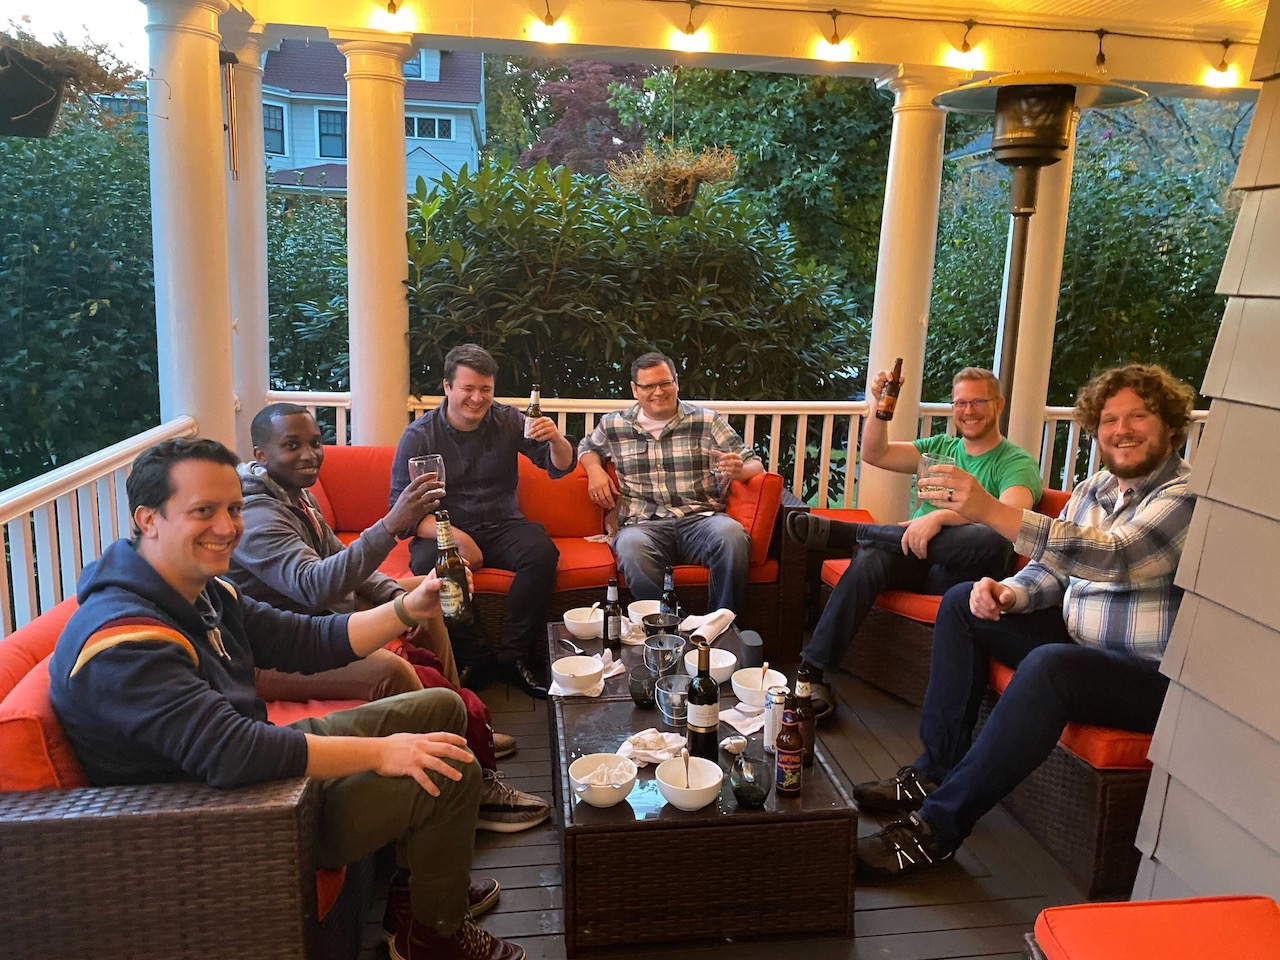 A bunch of dudes sitting on a porch.